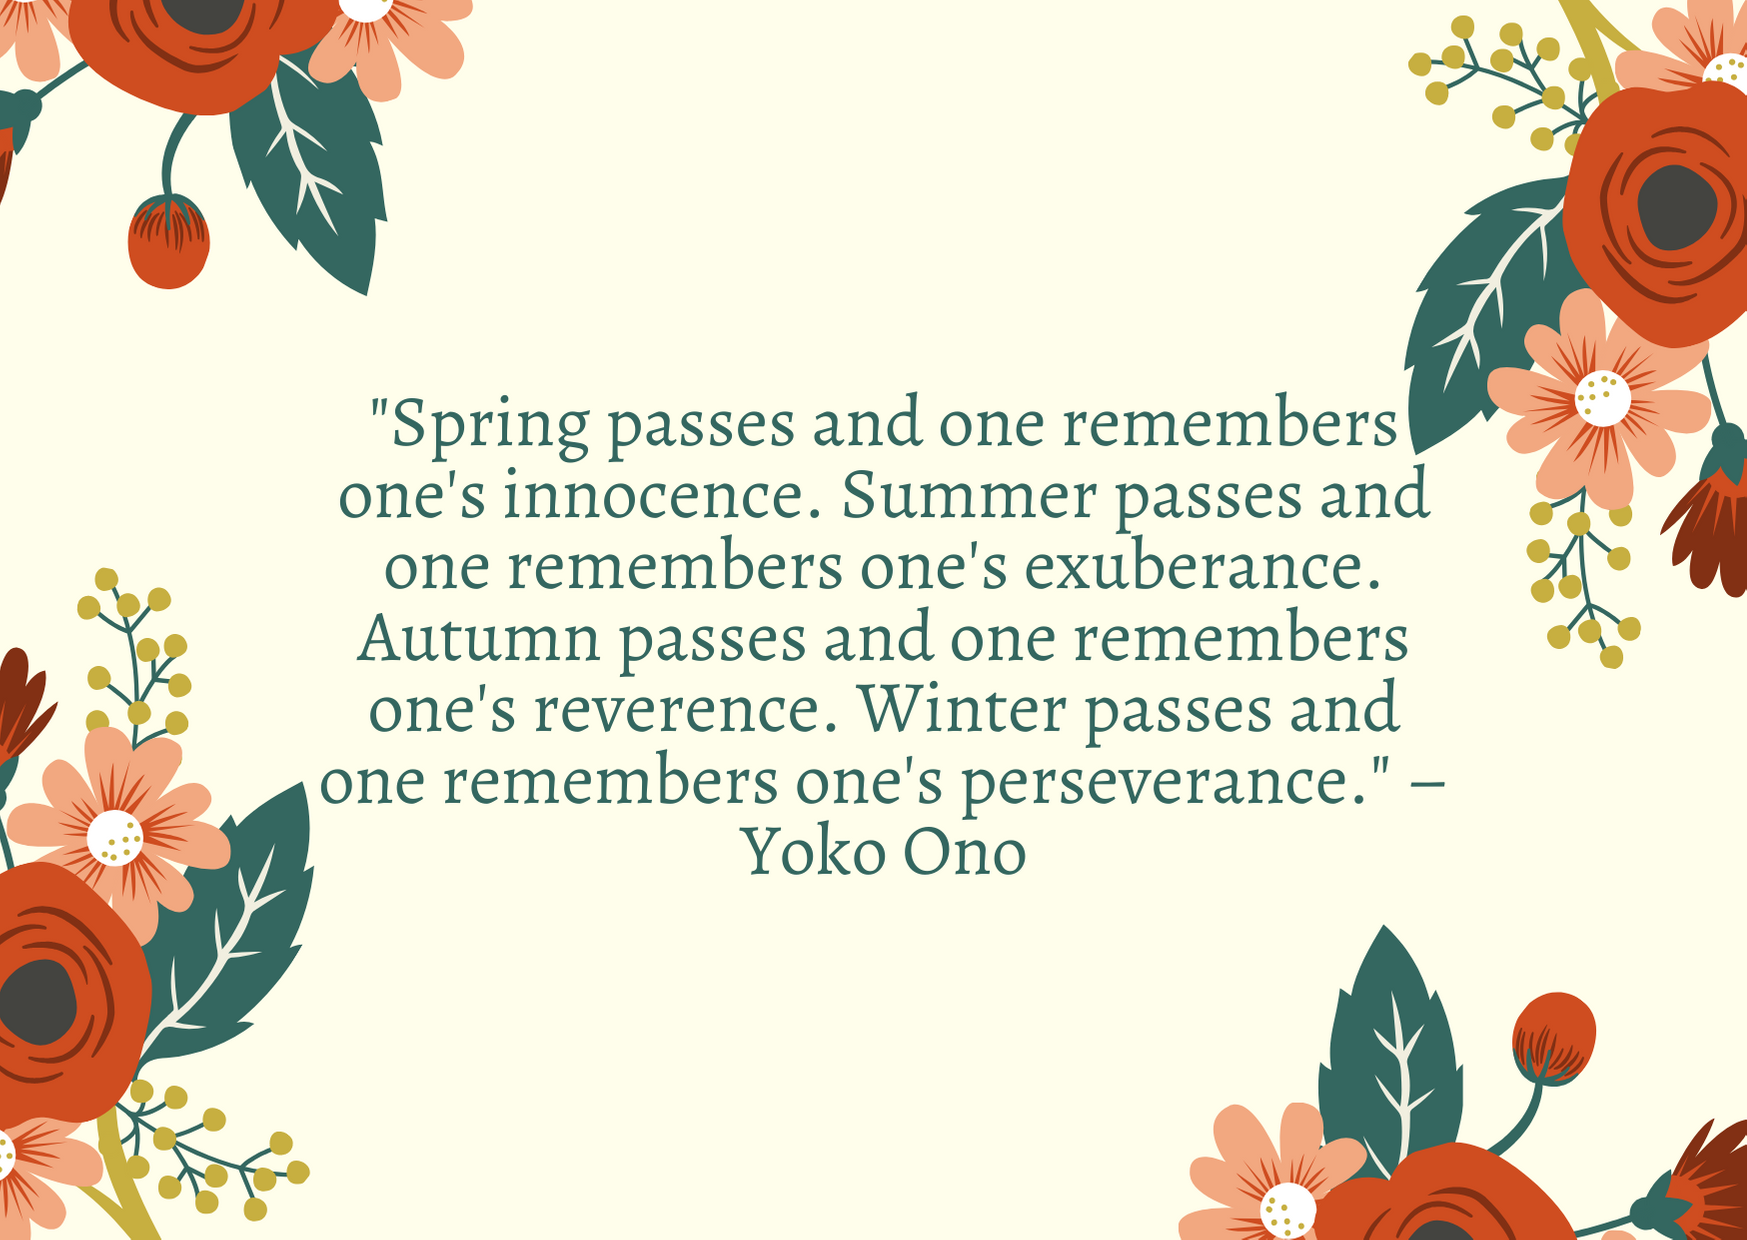 """Spring passes and one remembers one's innocence. Summer passes and one remembers one's exuberance. Autumn passes and one remembers one's reverence. Winter passes and one remembers one's perseverance."" – Yoko Ono"